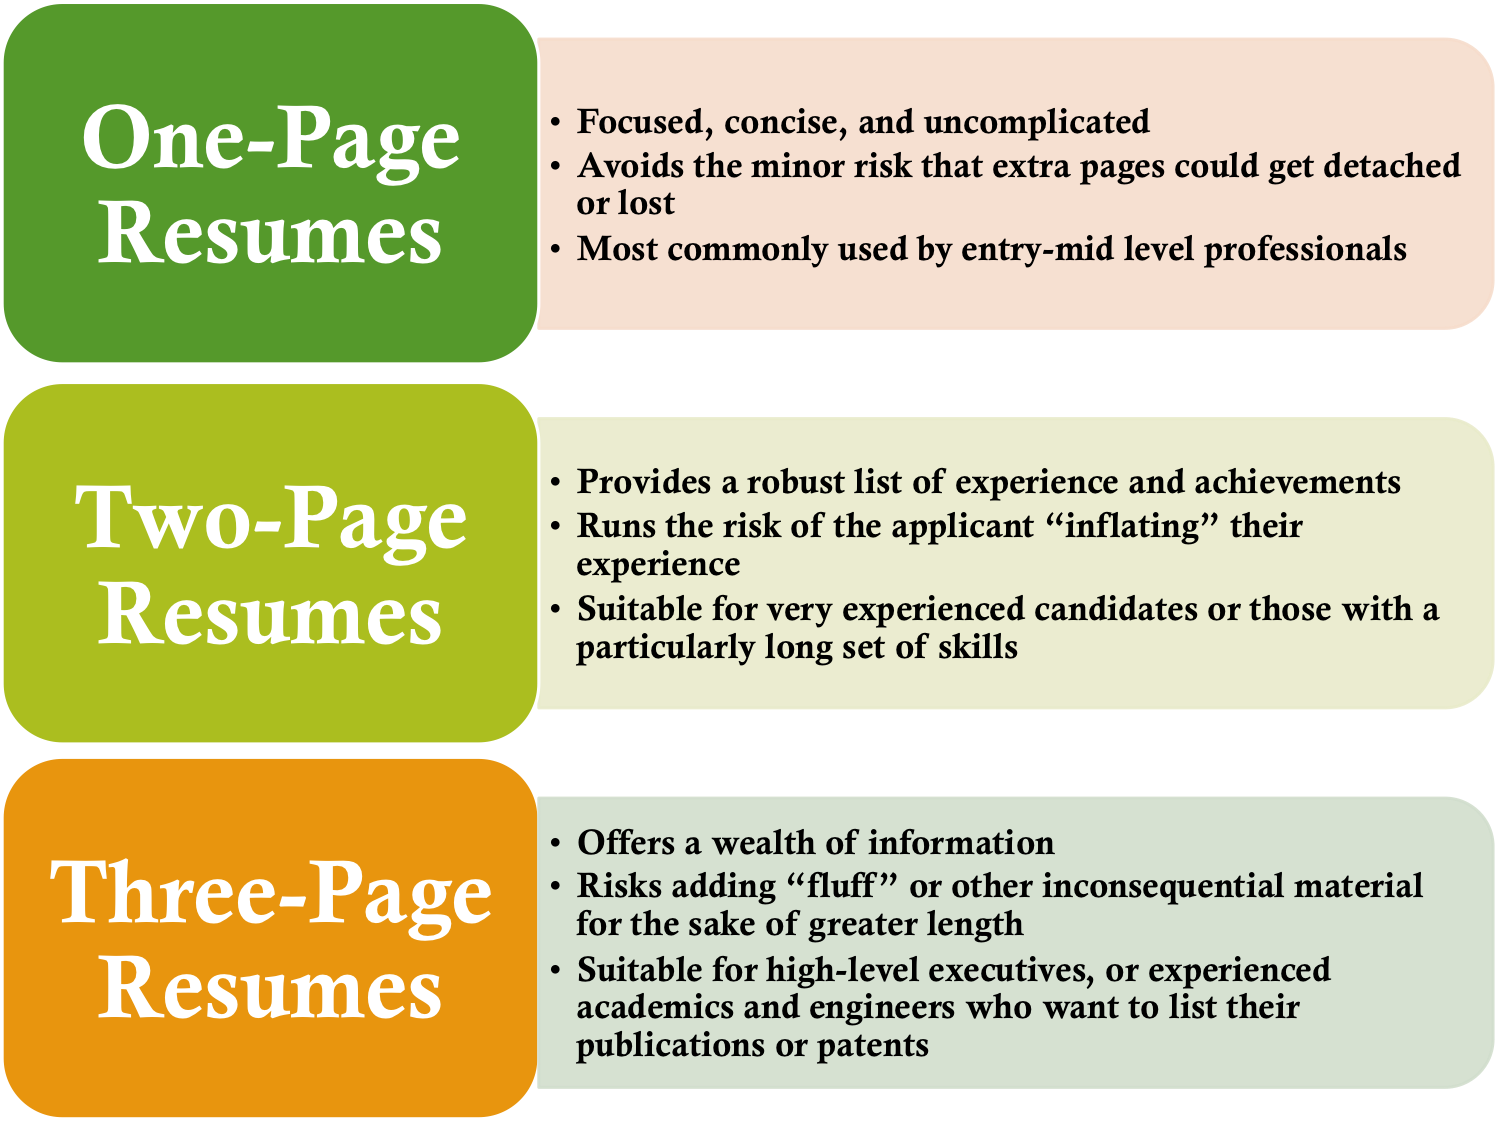 What Size Font For Resume resume format font resume font size name new resume margins resumes word best resume font size Ideal Resume Length